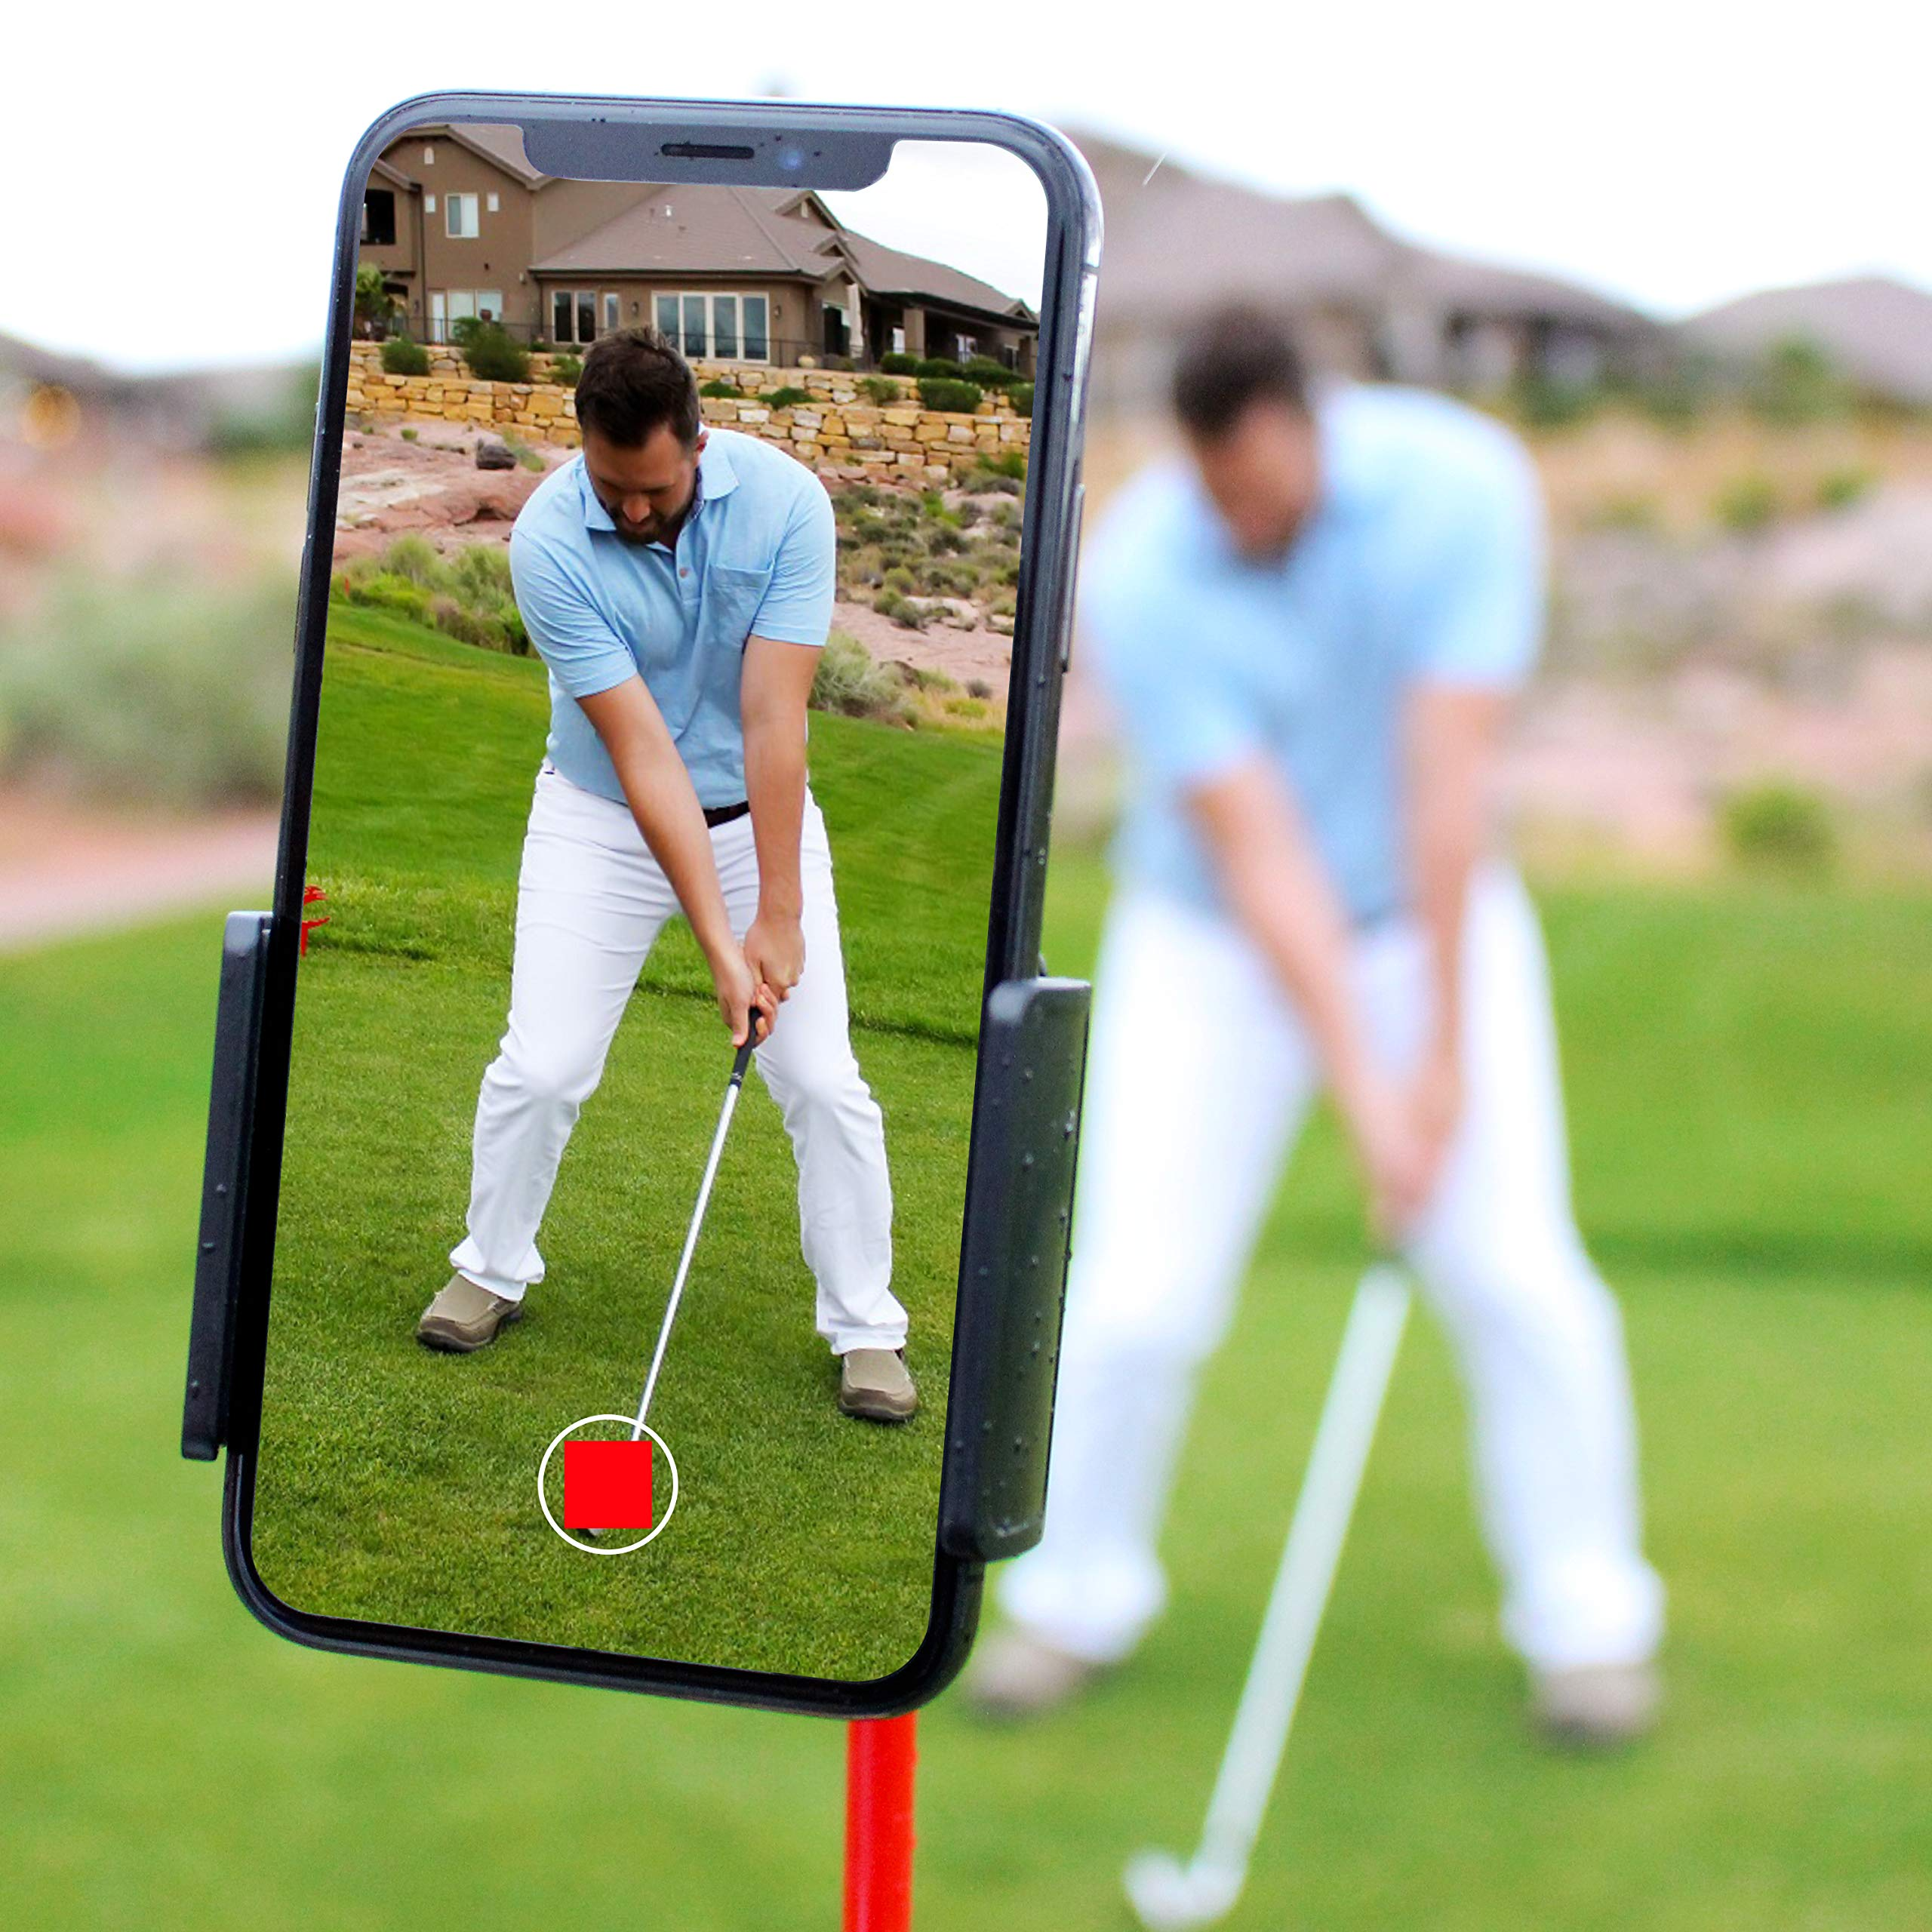 HoleN1 Golf Cell Phone Clip Holder and Training Aid to Video Record Swing - Clips to Golf Alignment Sticks and Golf Club Shaft - Works with any iPhone or Android Phone, Premium Golf Accessories by HoleN1 Golf